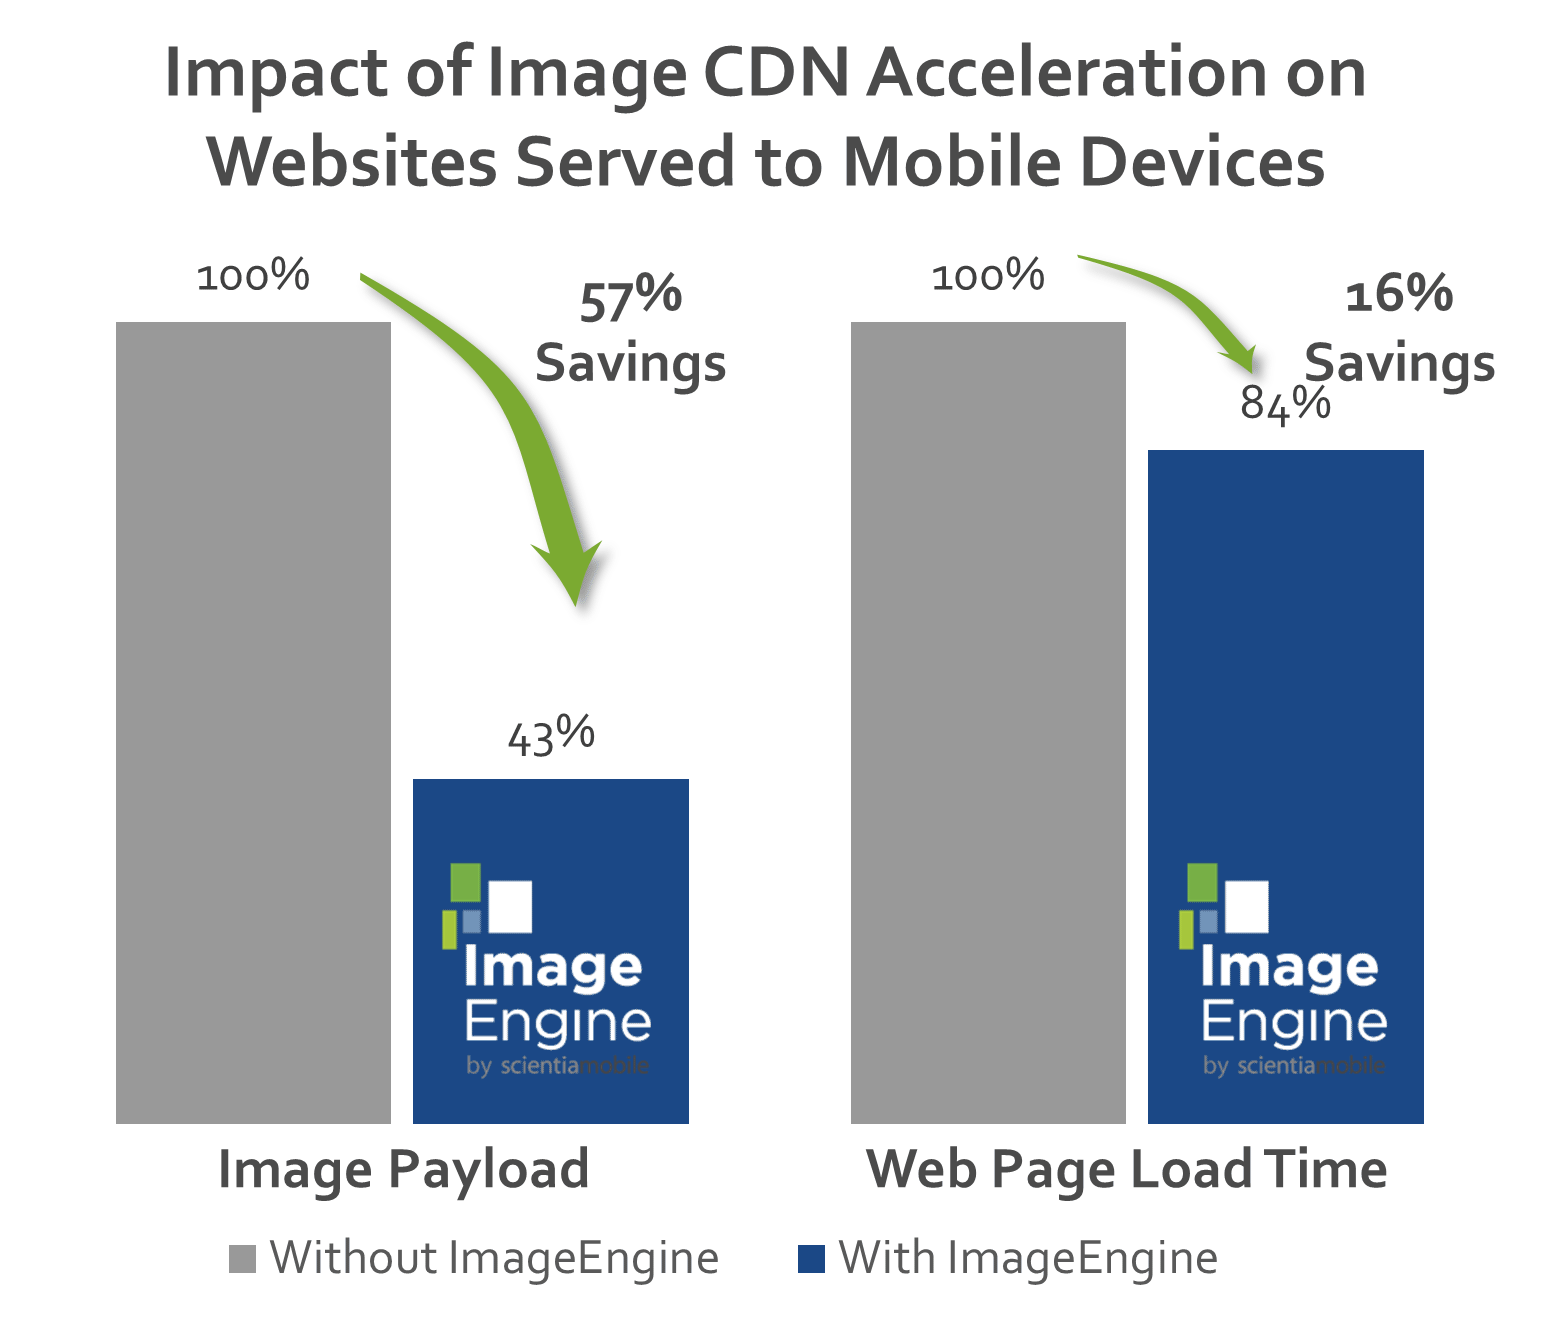 Reduce Image payload